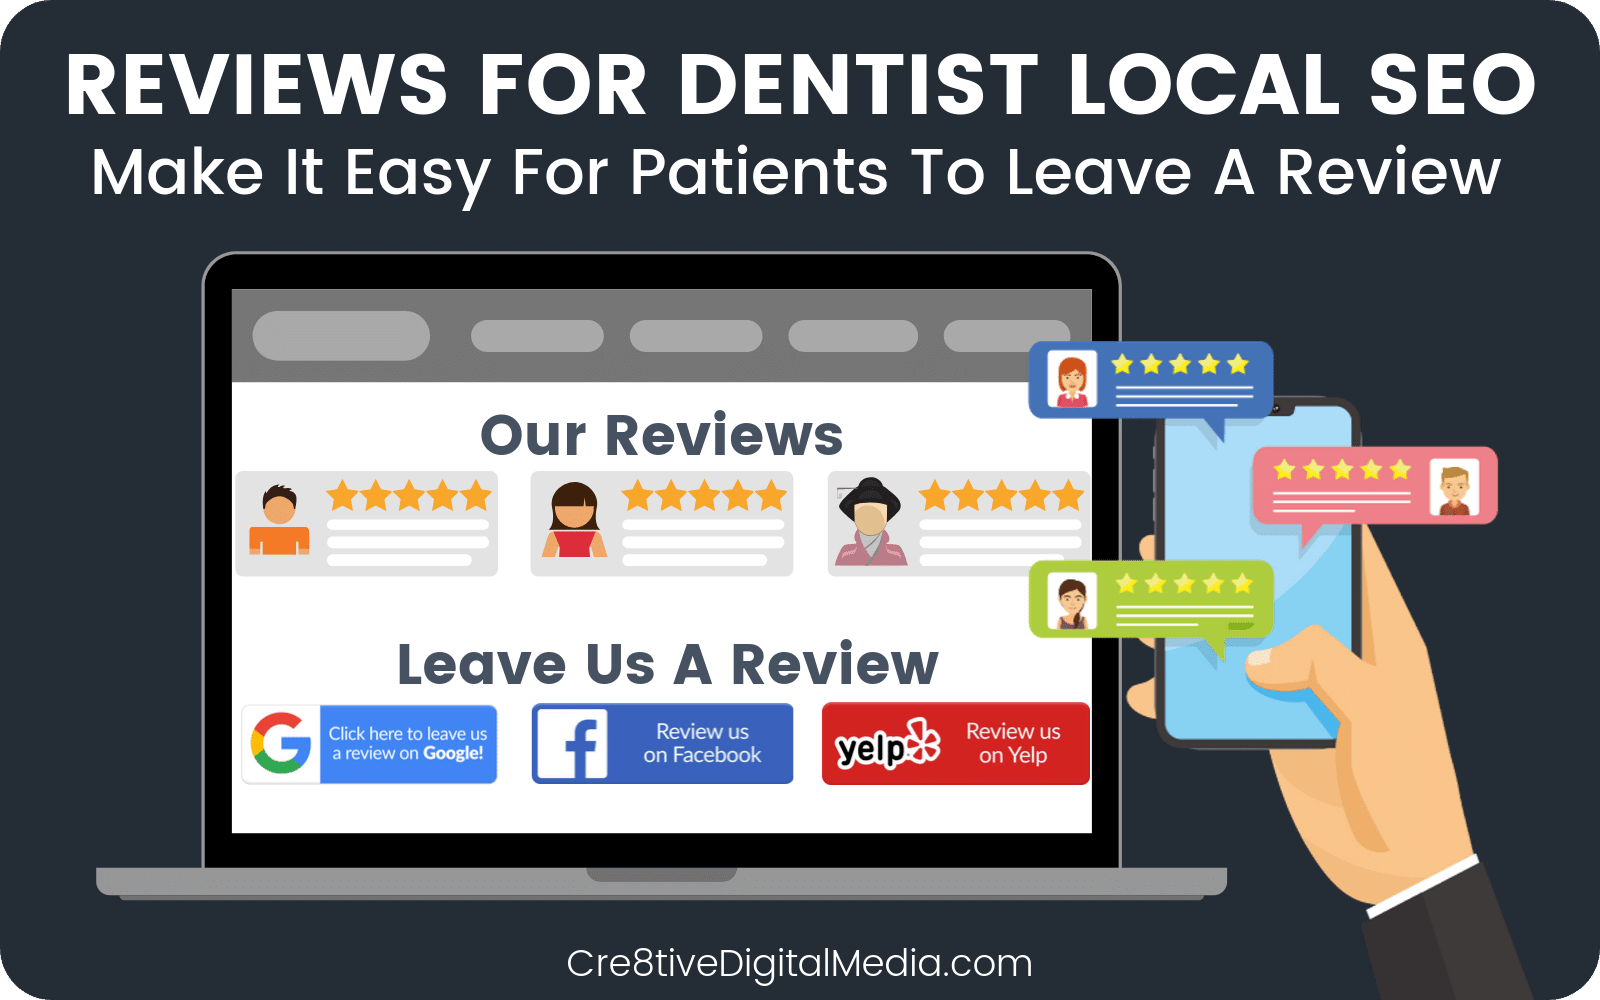 Reviews For Dentist Local SEO